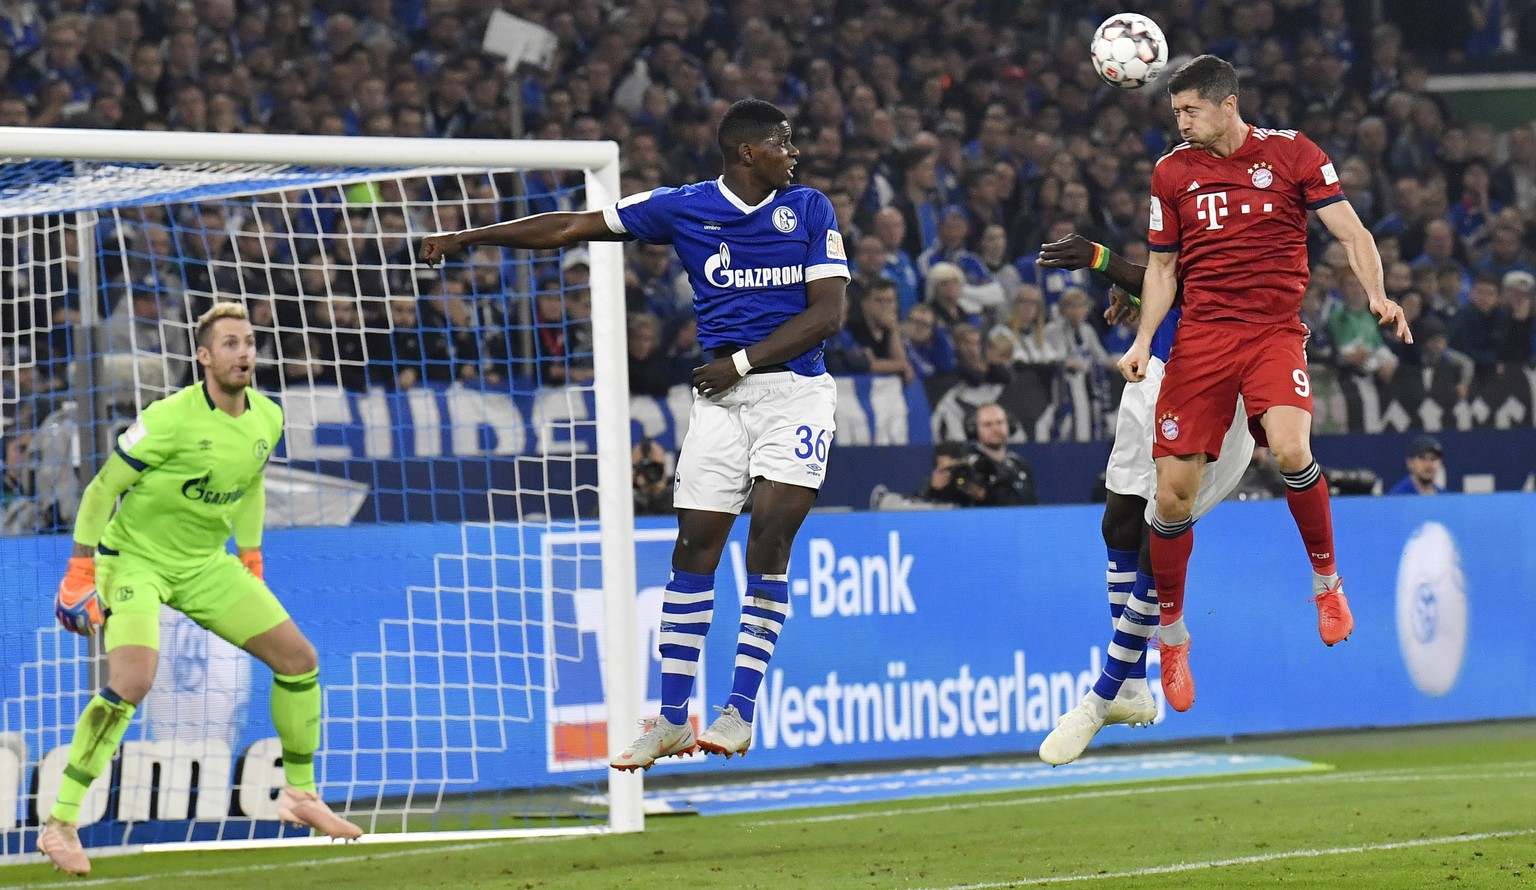 Bayern's Robert Lewandowski, right, heads the ball to Schalke goalkeeper Ralf Faehrmann, left, during the German Bundesliga soccer match between FC Schalke 04 and Bayern Munich in Gelsenkirchen, Germany, Saturday, Sept. 22, 2018. (AP Photo/Martin Meissner)